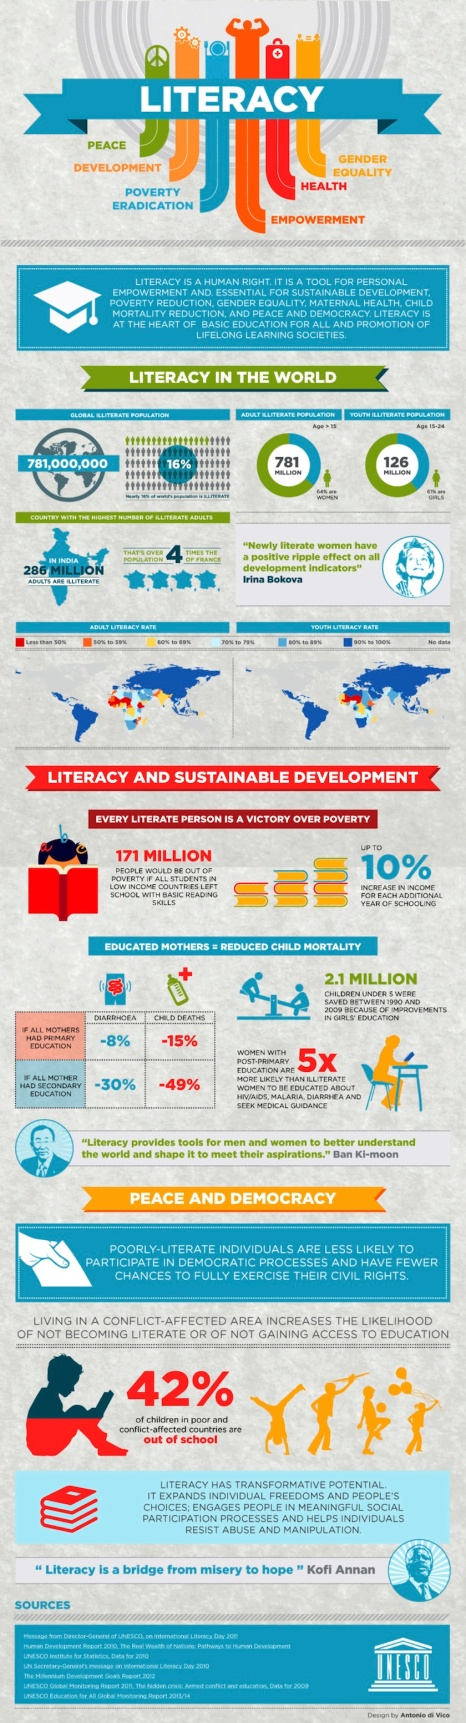 literacy-around-the-world-2014-infographic